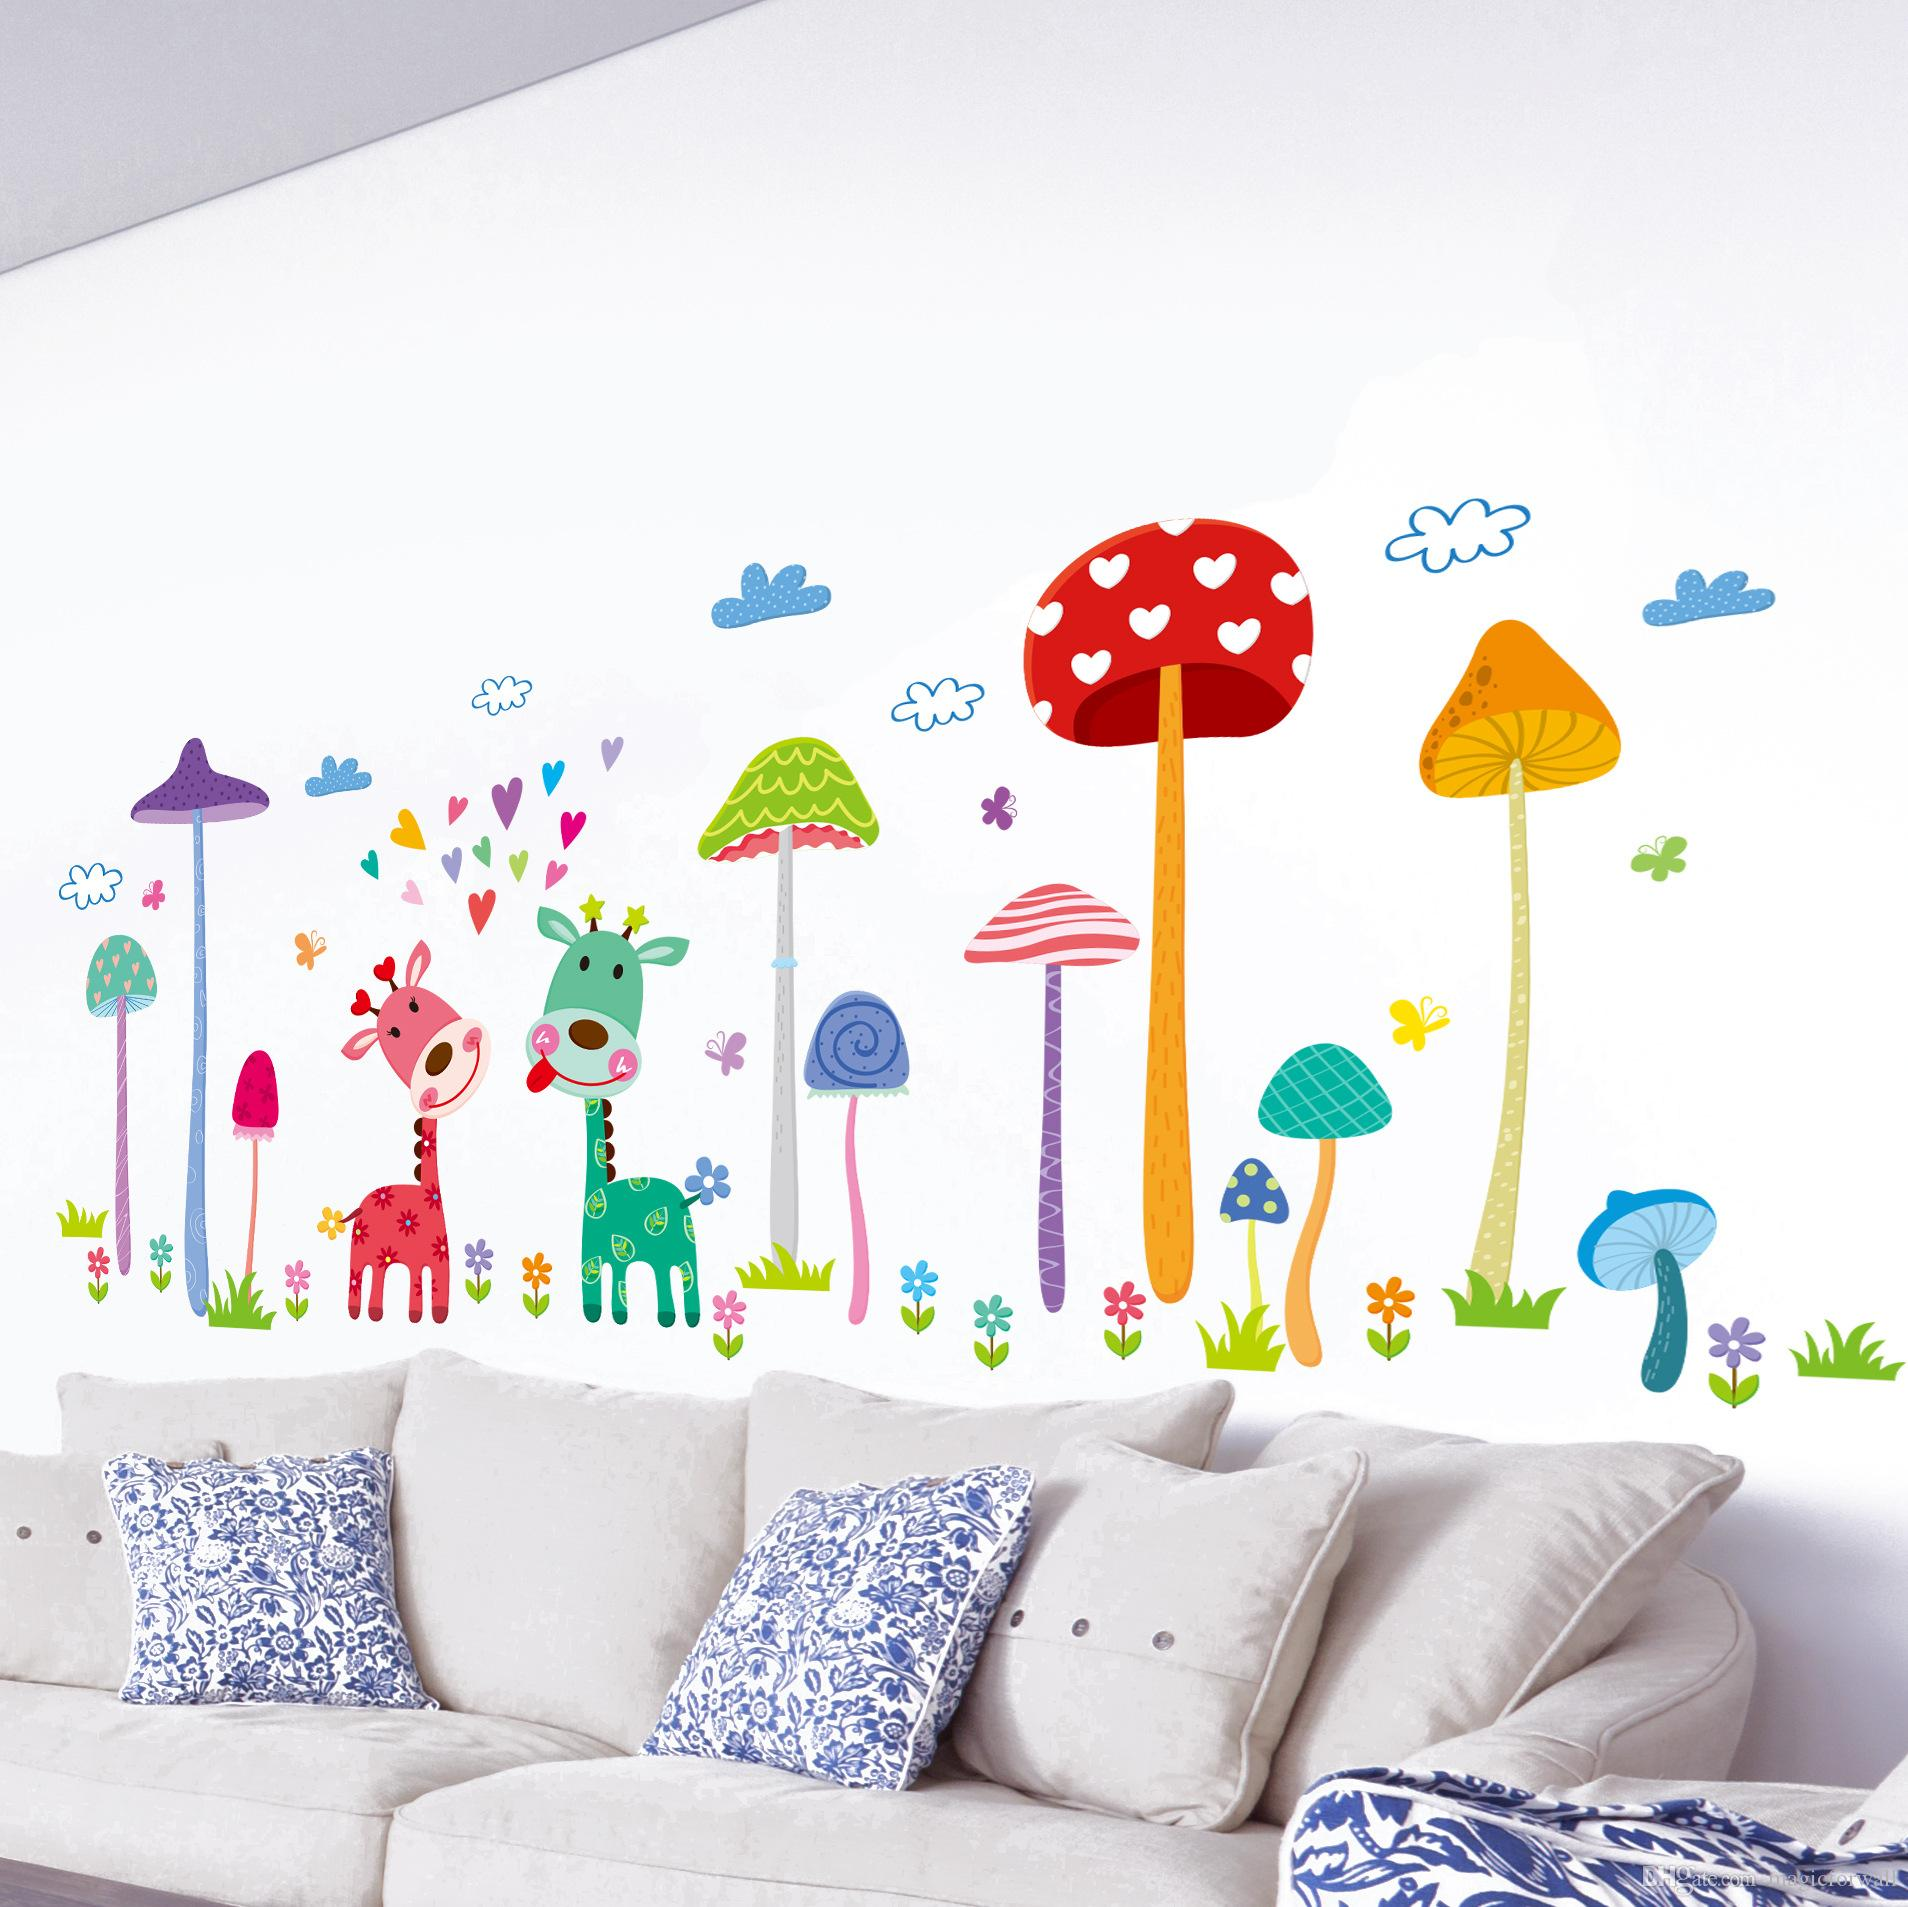 Forest Mushroom Deer Animals Home Wall Art Mural Decor Kids Babies Room  Nursery Wallpaper Decoration Decal Lovely Animals Family Art Decor Forest  Mushroom ...